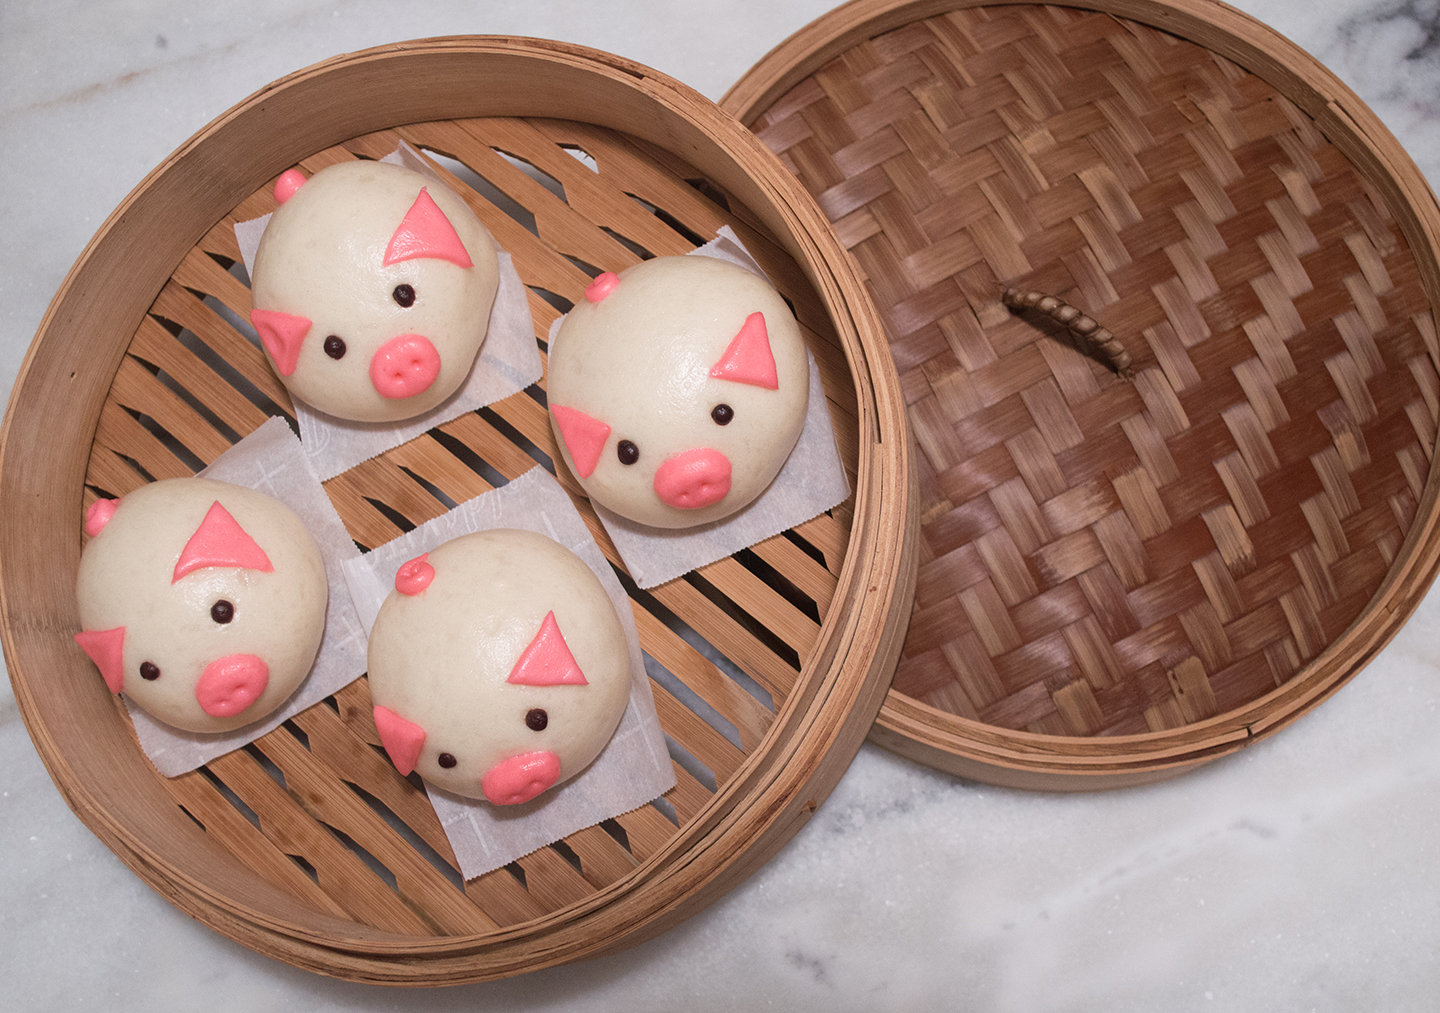 Custard Pig Bun - Pigs in Steamer